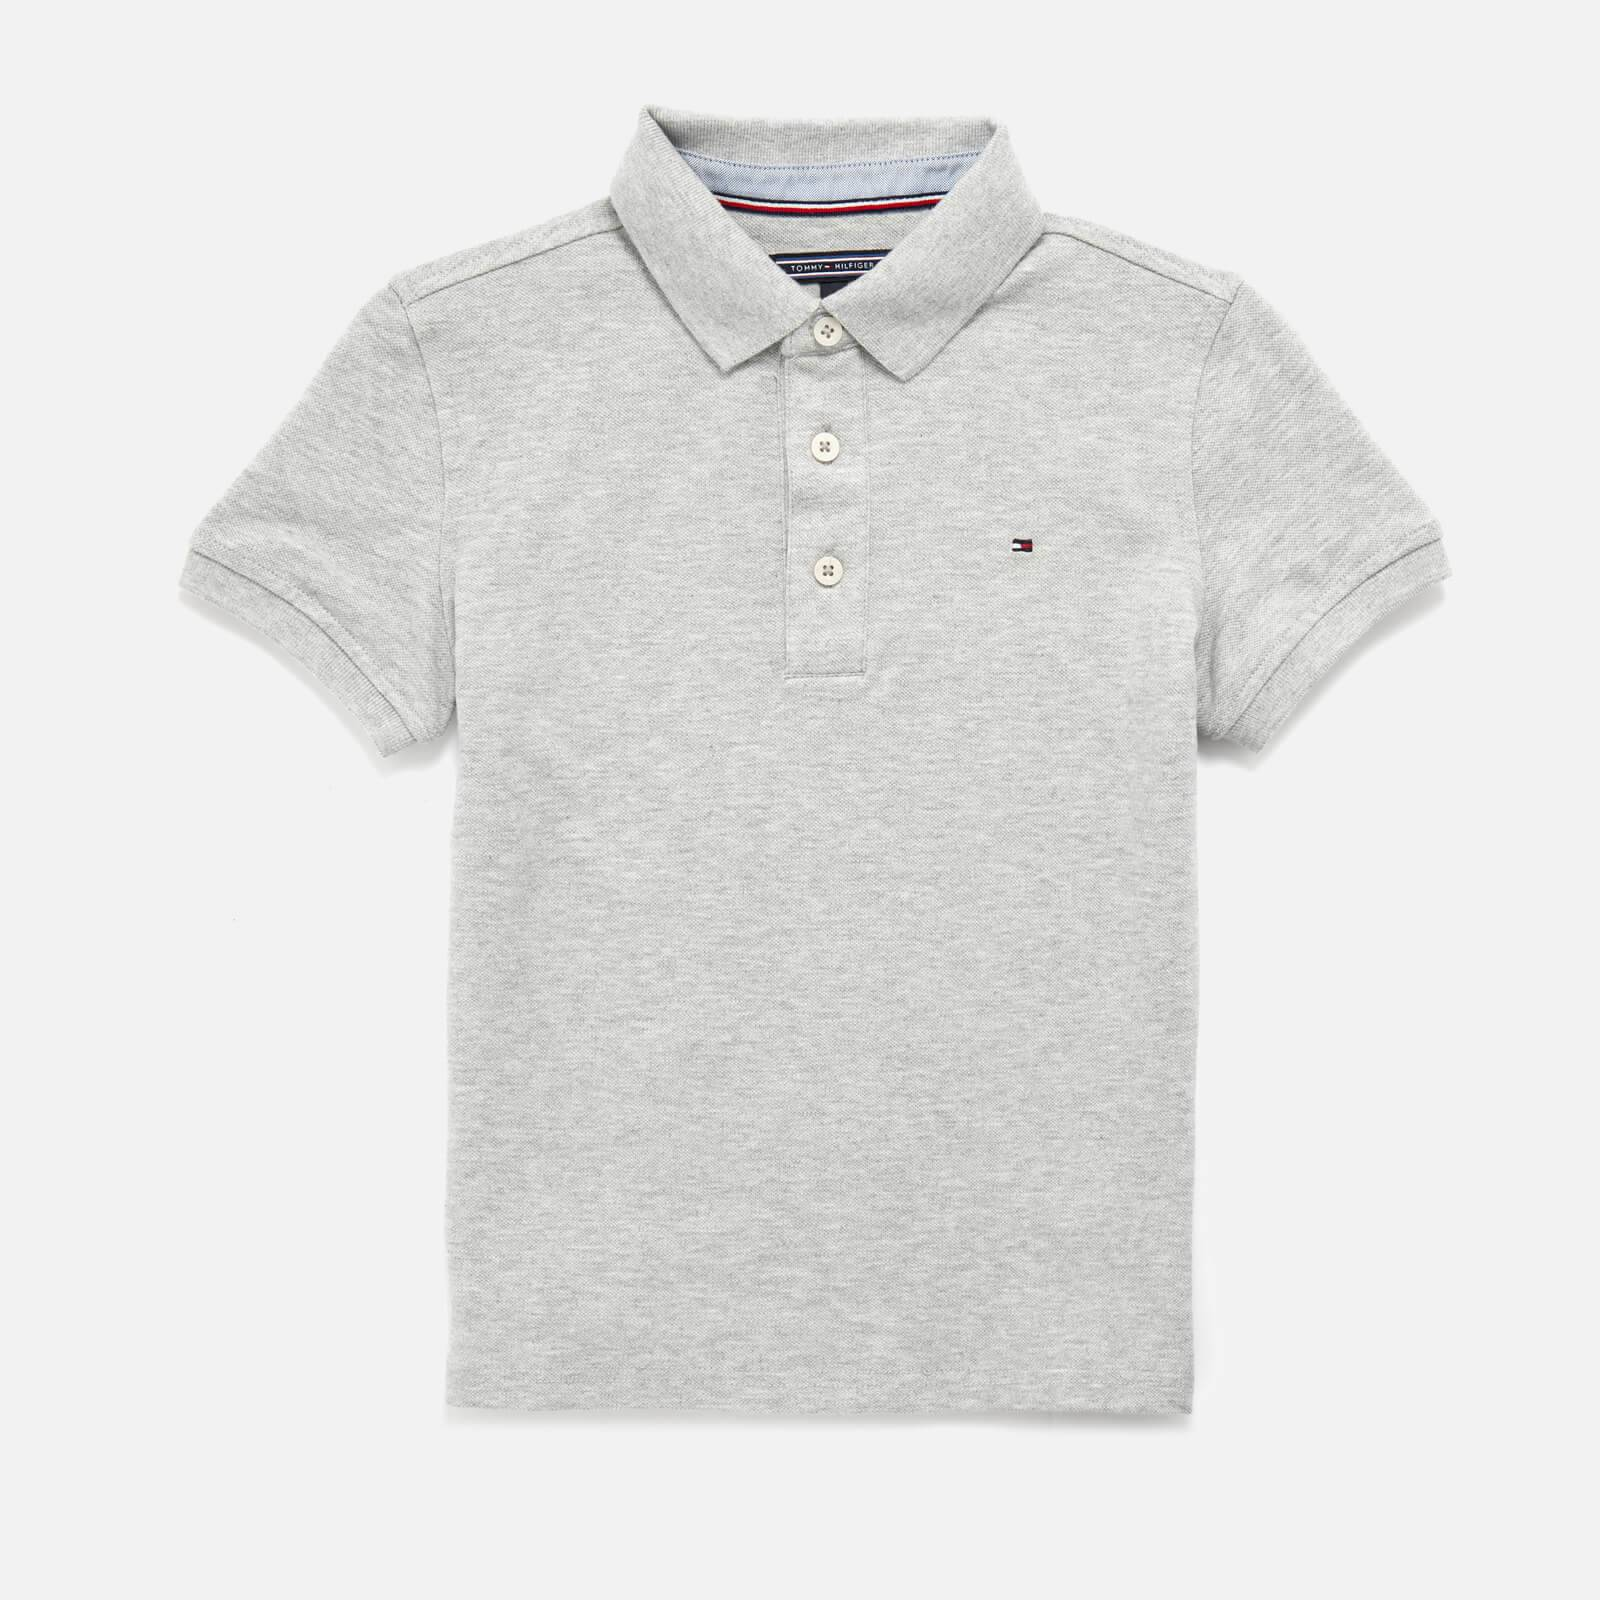 Tommy Kids Boys' Iconic Polo Shirt - Grey Heather - 8 Years